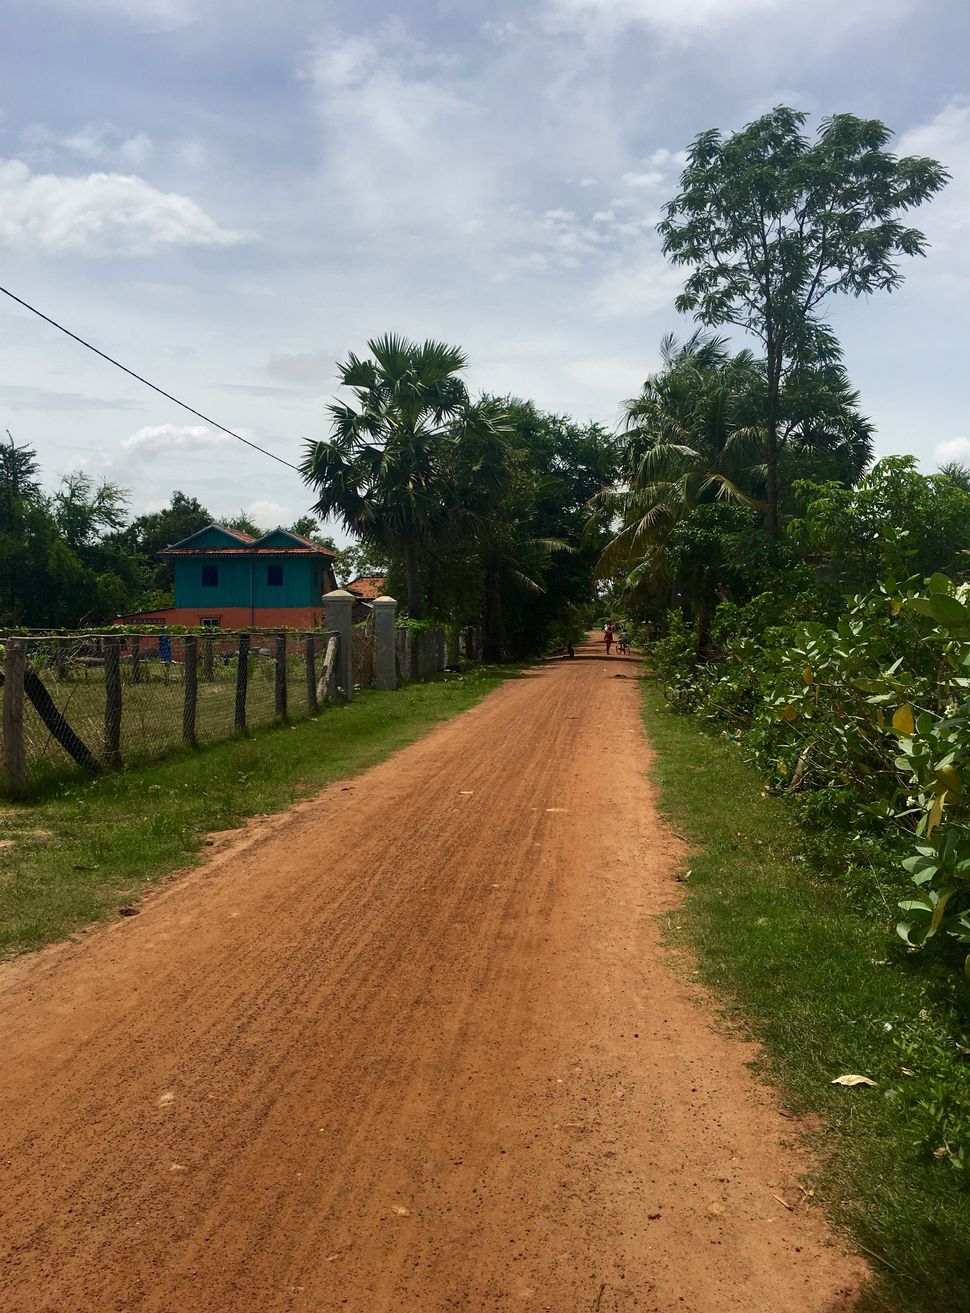 The dirt road in a Kampong Speu village on which many of the recruited brides drive to get to China.